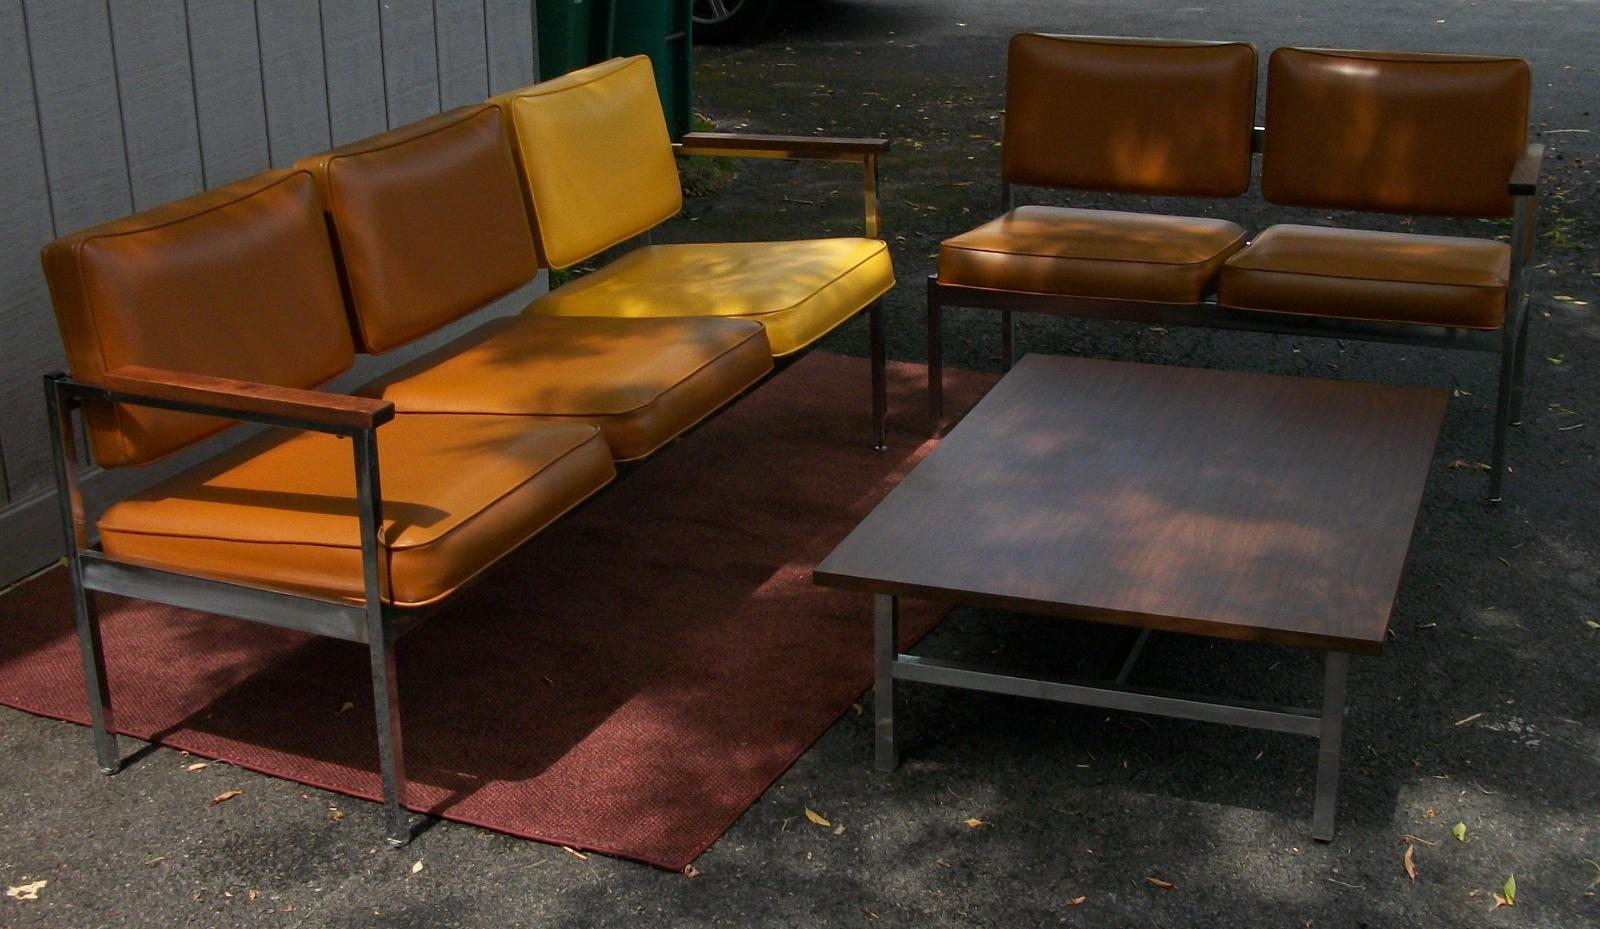 Unique Mid Century Modern Waiting Room Set Two Sectional Couches And One Table